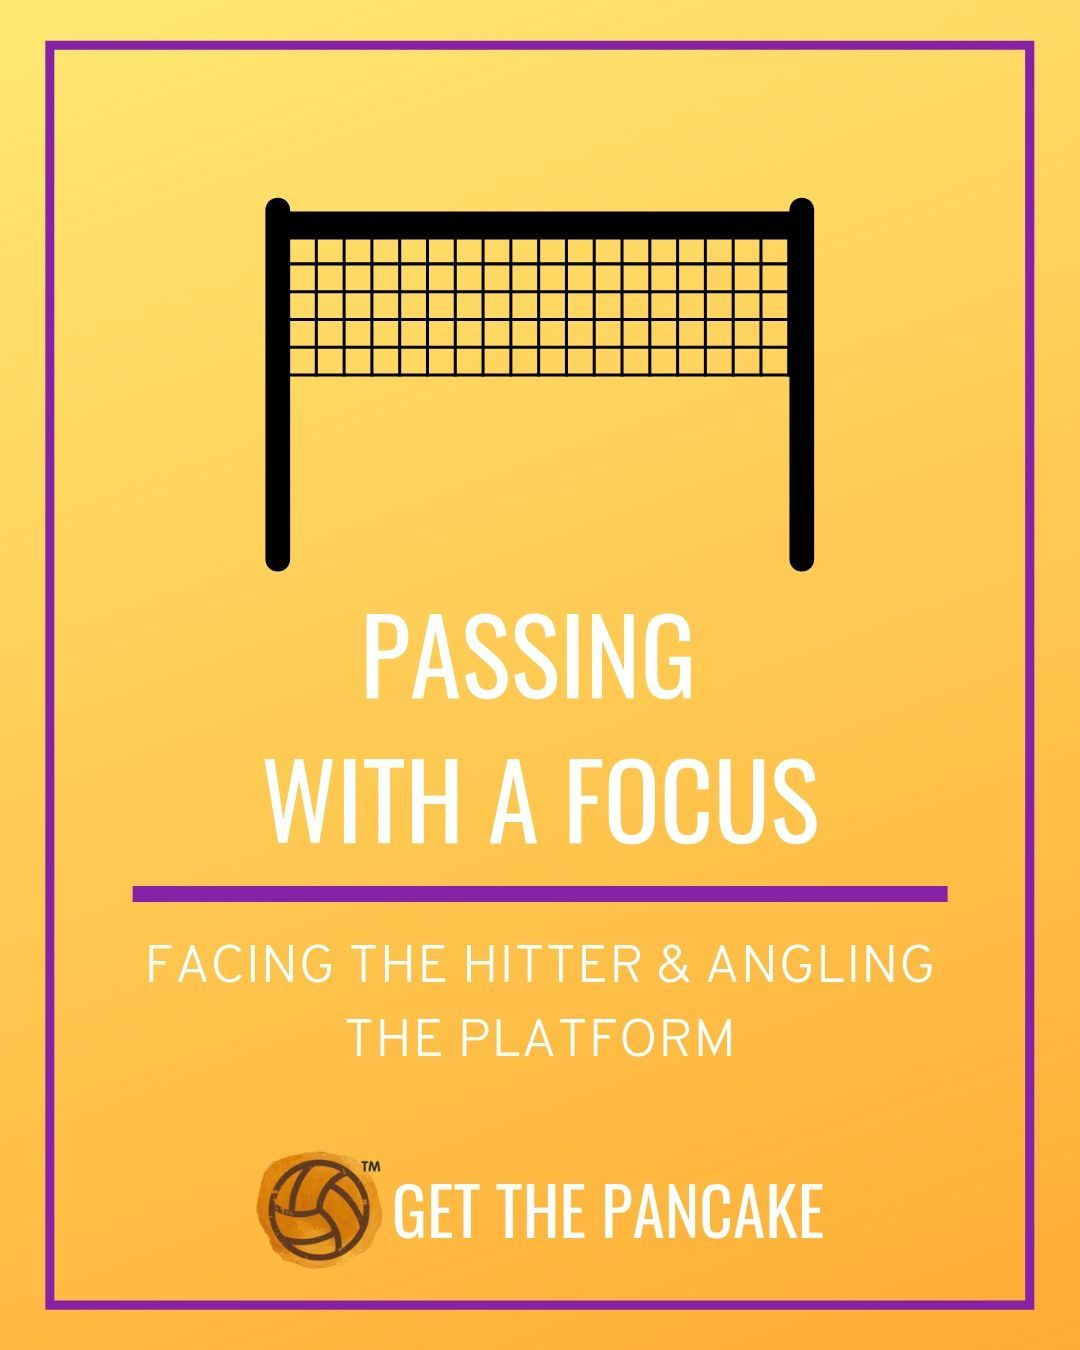 Beginner Volleyball Passing Tips Facing The Hitter With Images Coaching Volleyball Volleyball Quotes Volleyball Drills For Beginners